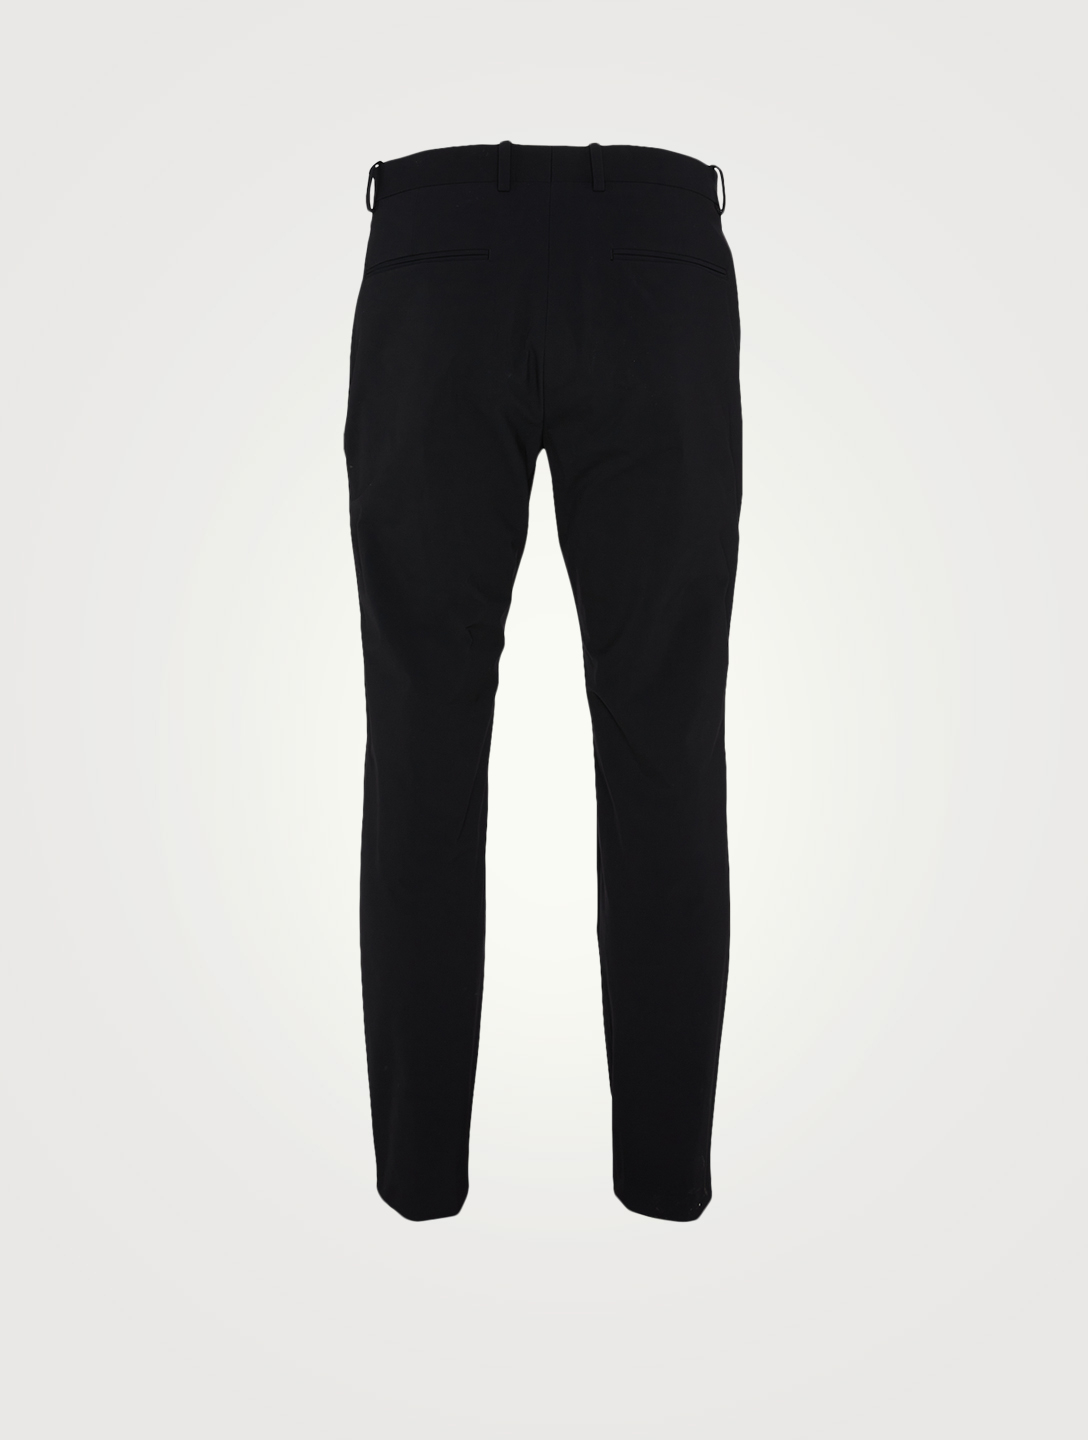 THEORY Precision Tech Curtis Pants Men's Black